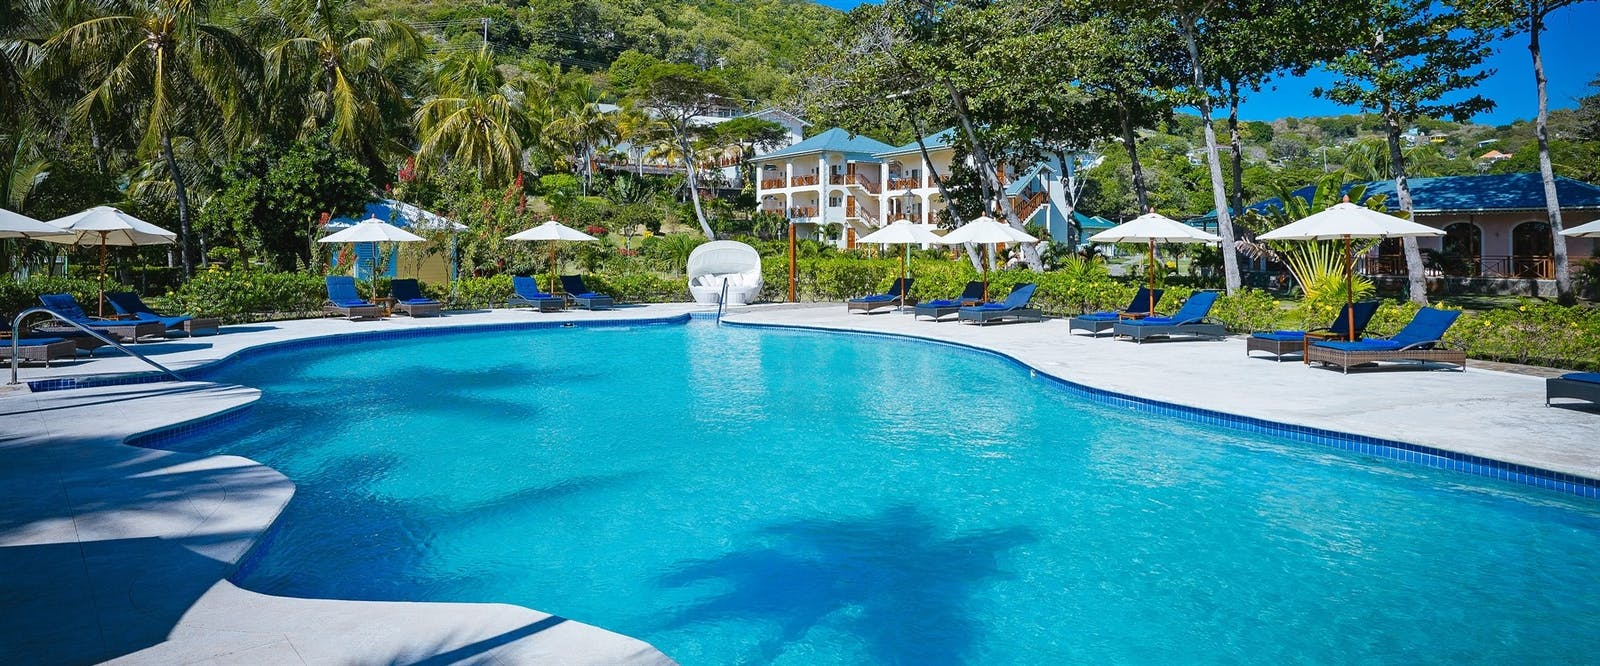 Main Pool at Bequia Beach Hotel, St Vincent and The Grenadines